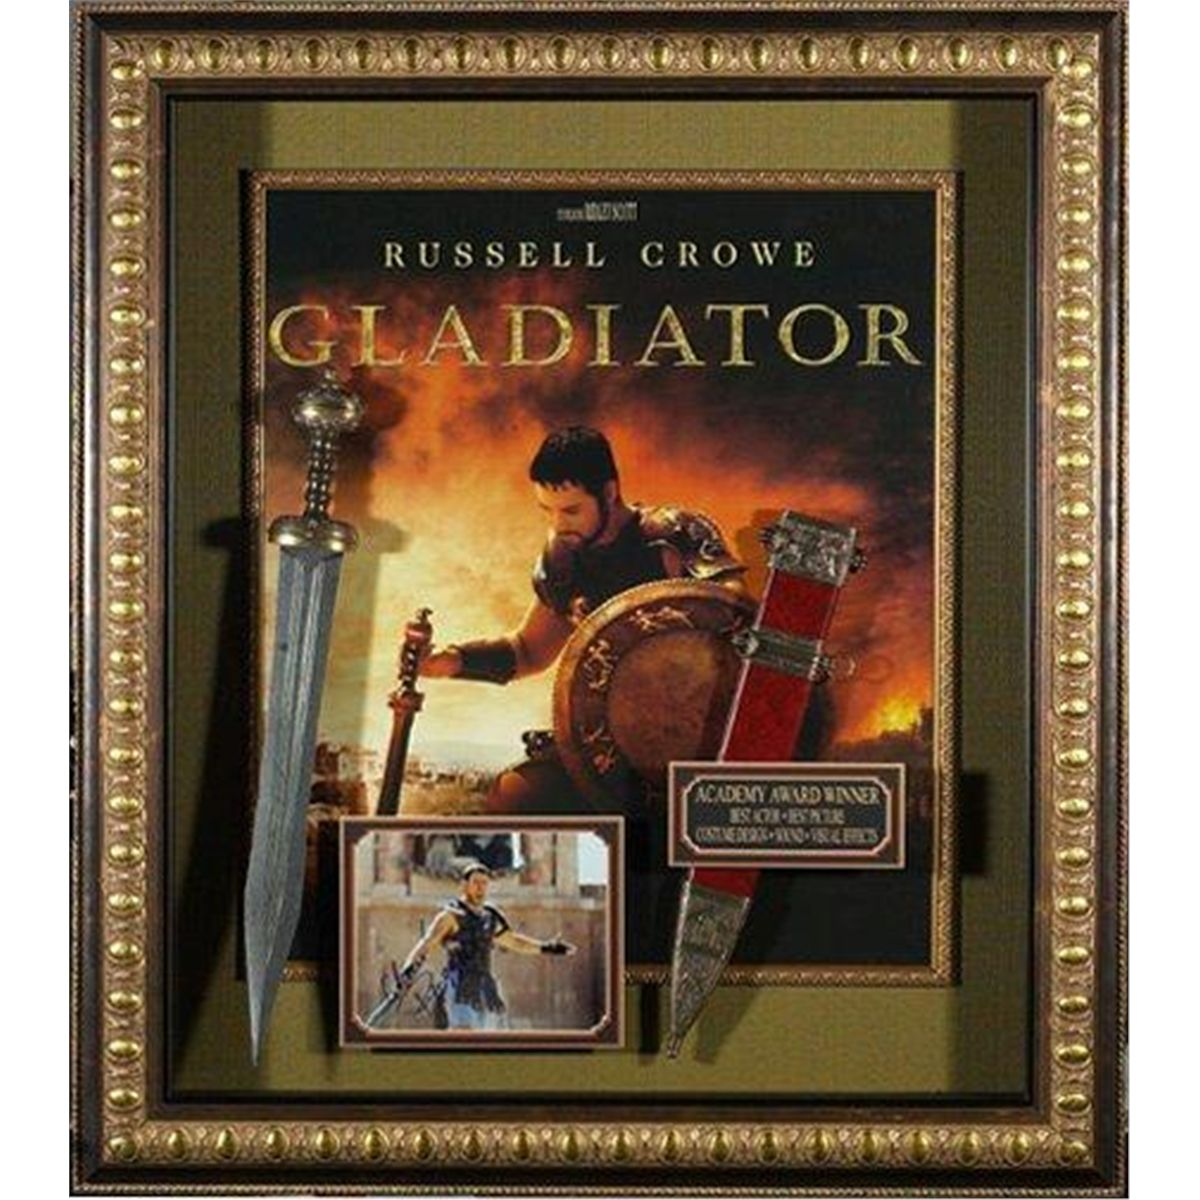 hollywood gladiator gladiator large movie poster with